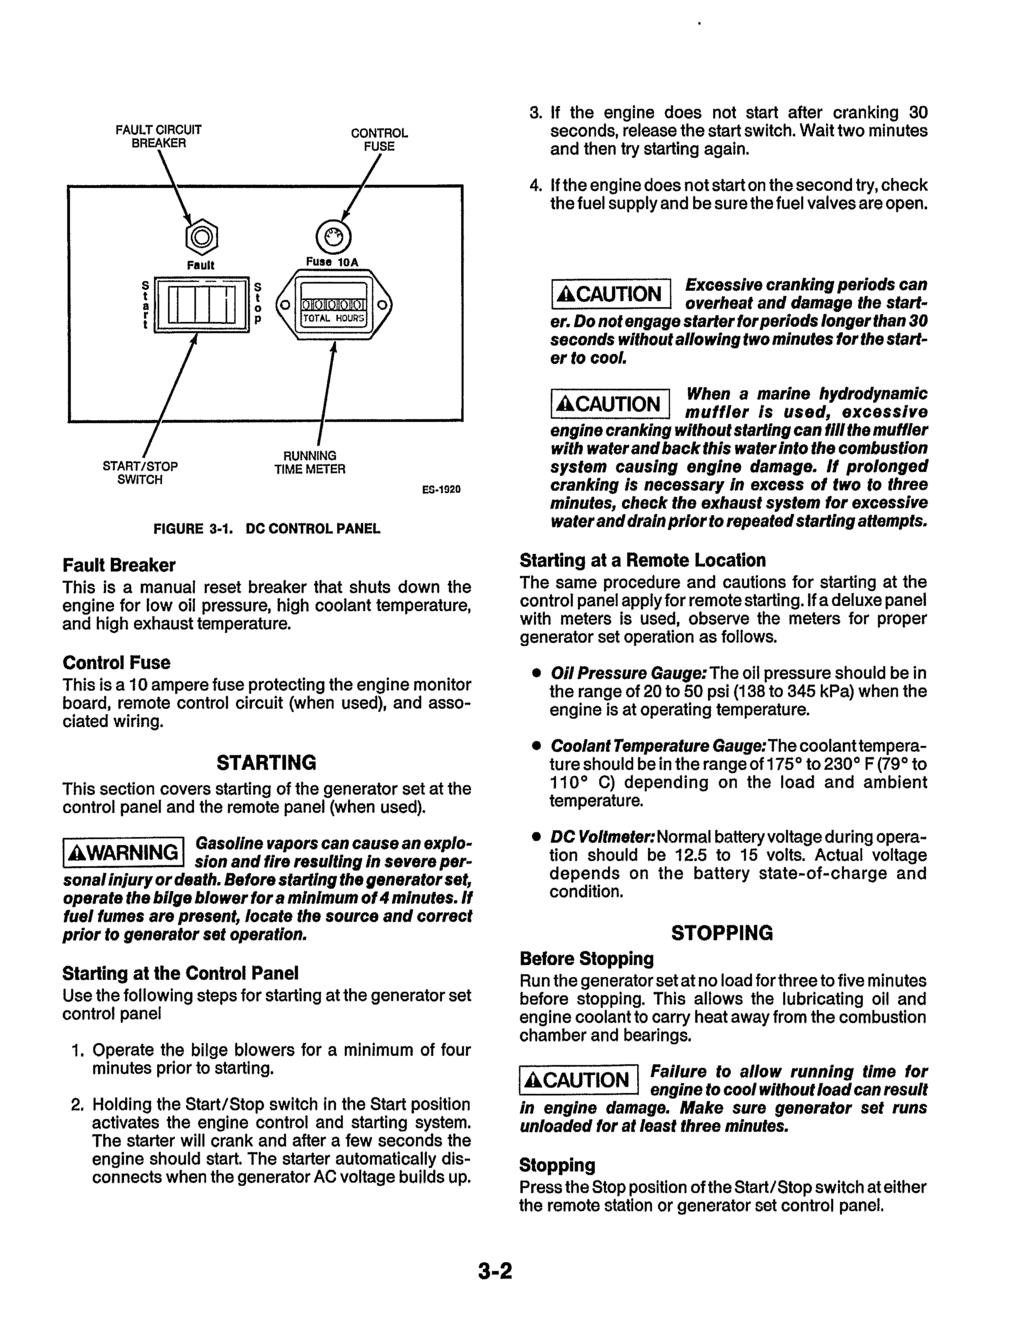 Mce Ensign Series 4500 6500 Printed In Usa Pdf Remote Control Switch Circuit 7 Remotecontrolcircuit Fault Breaker 3 If The Engine Does Not Start After